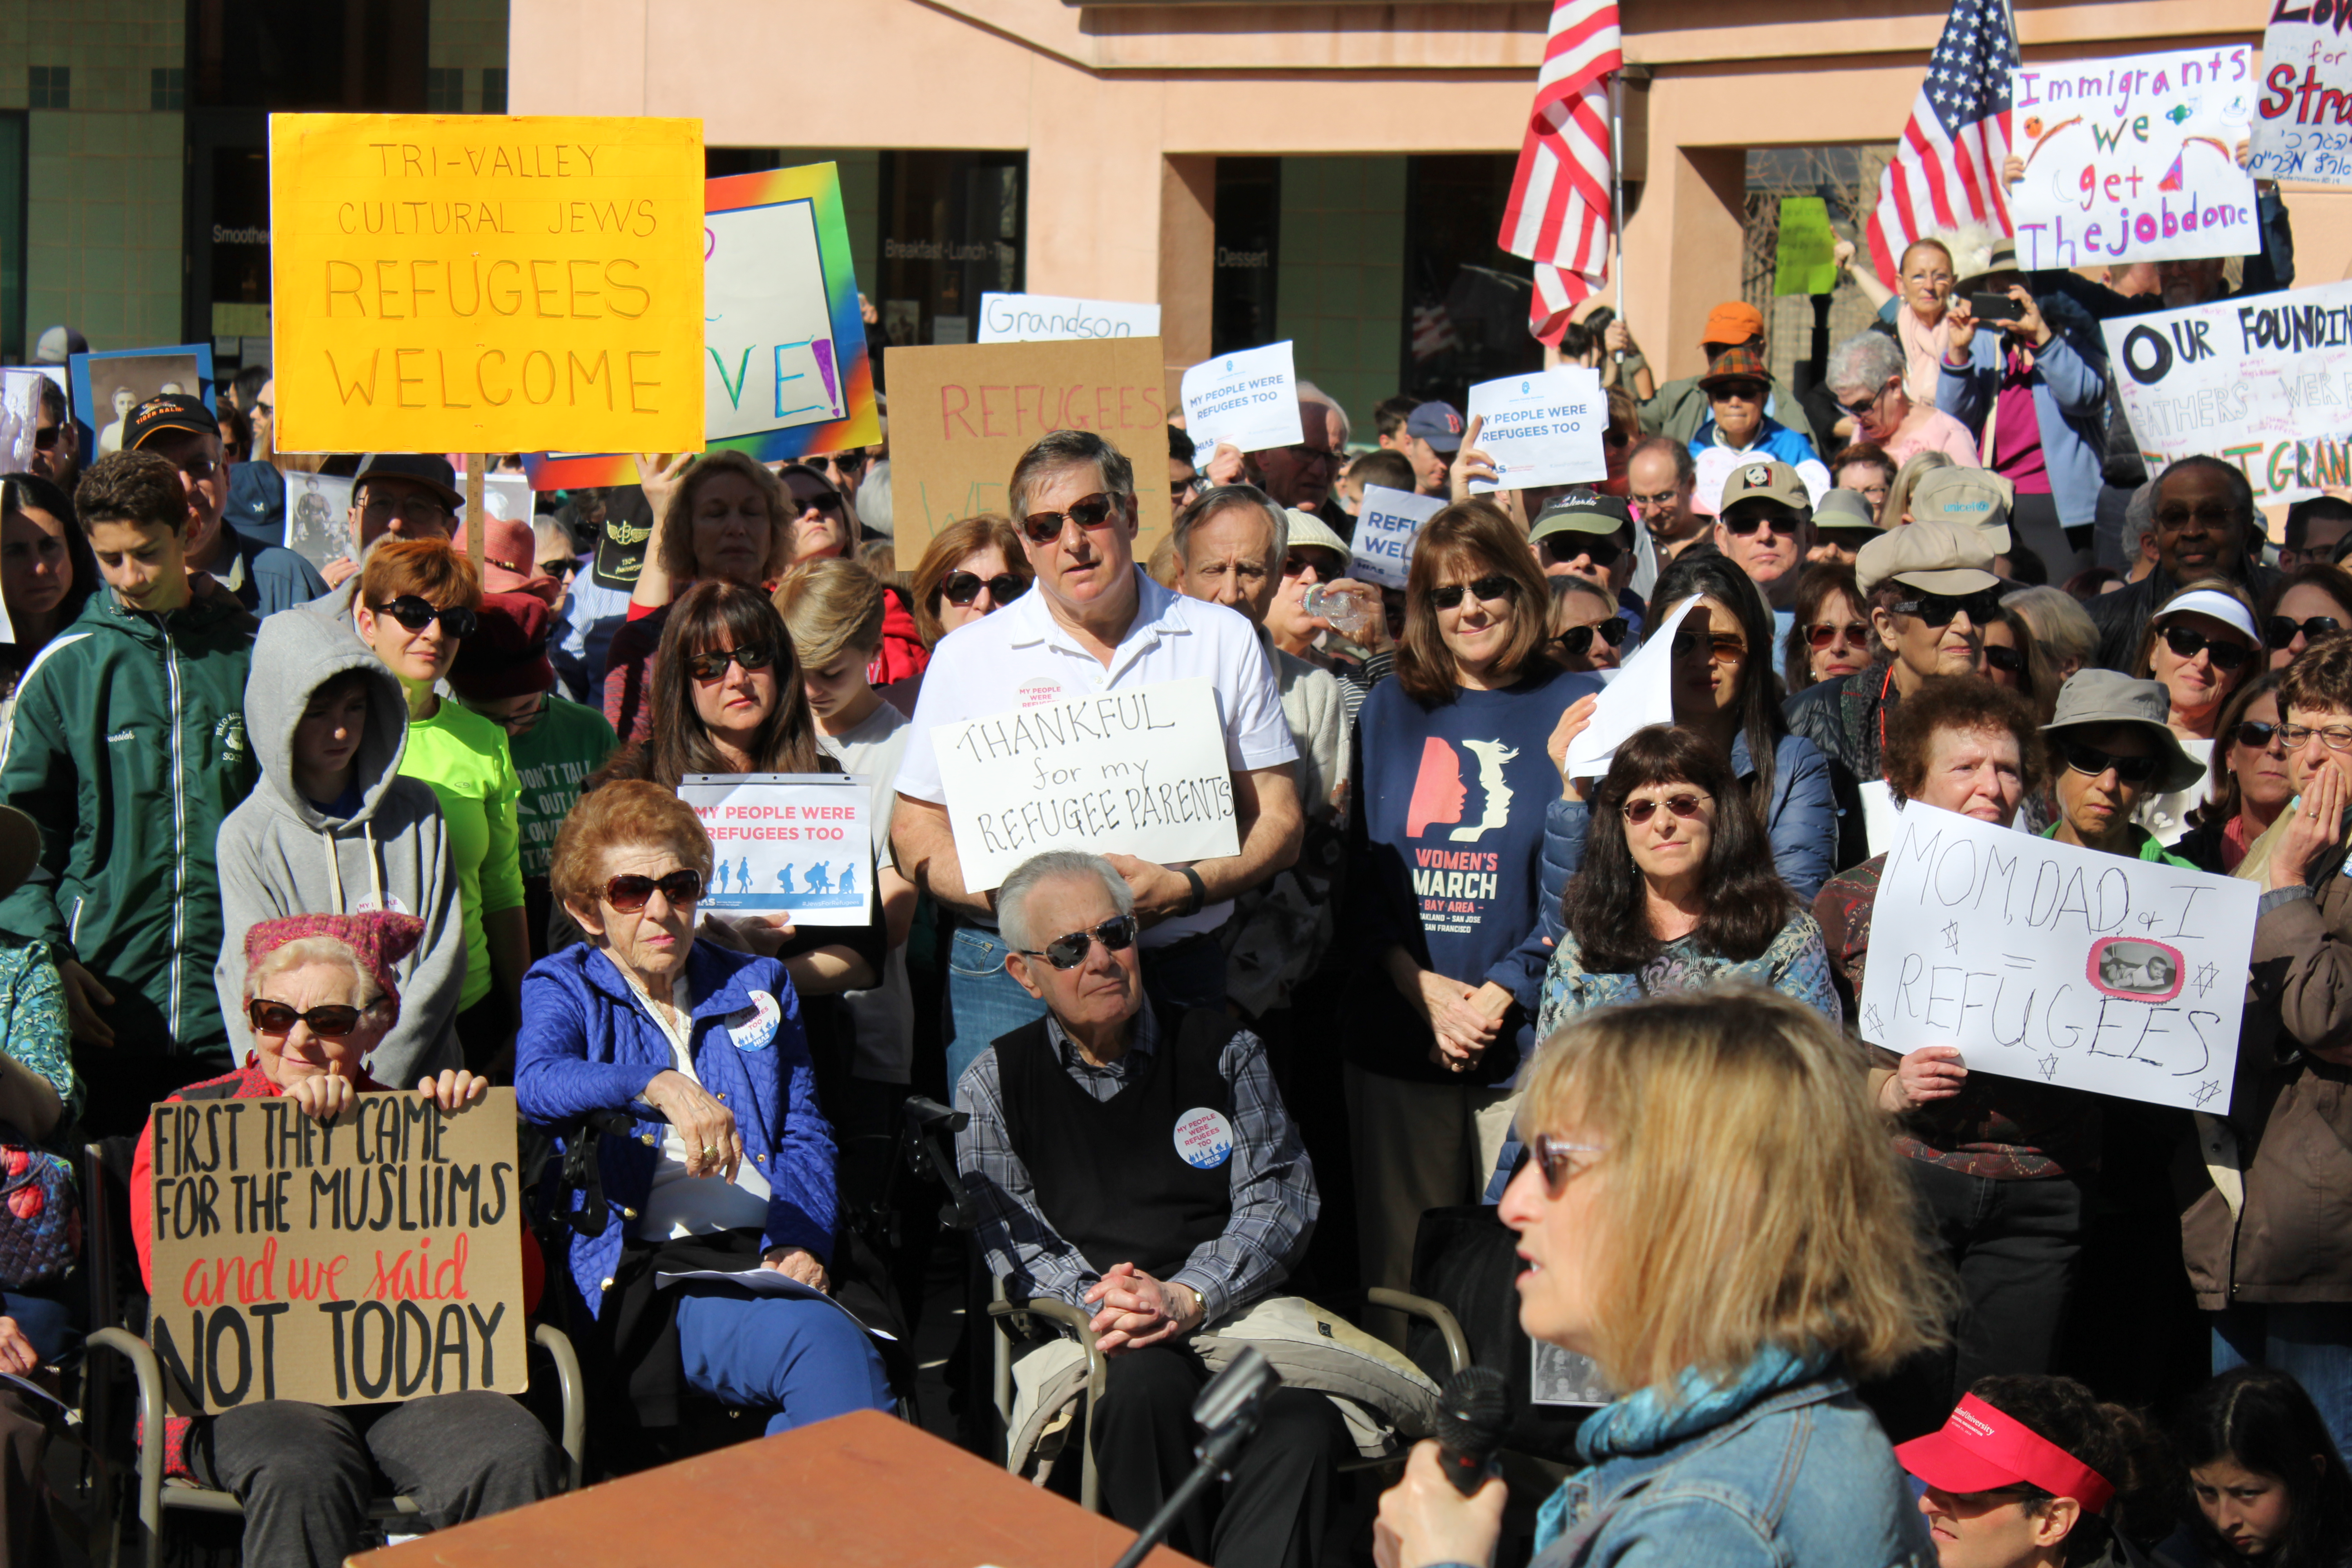 """a large crowd holds signs like """"tri-valley cultural jews: refugees welcome"""""""